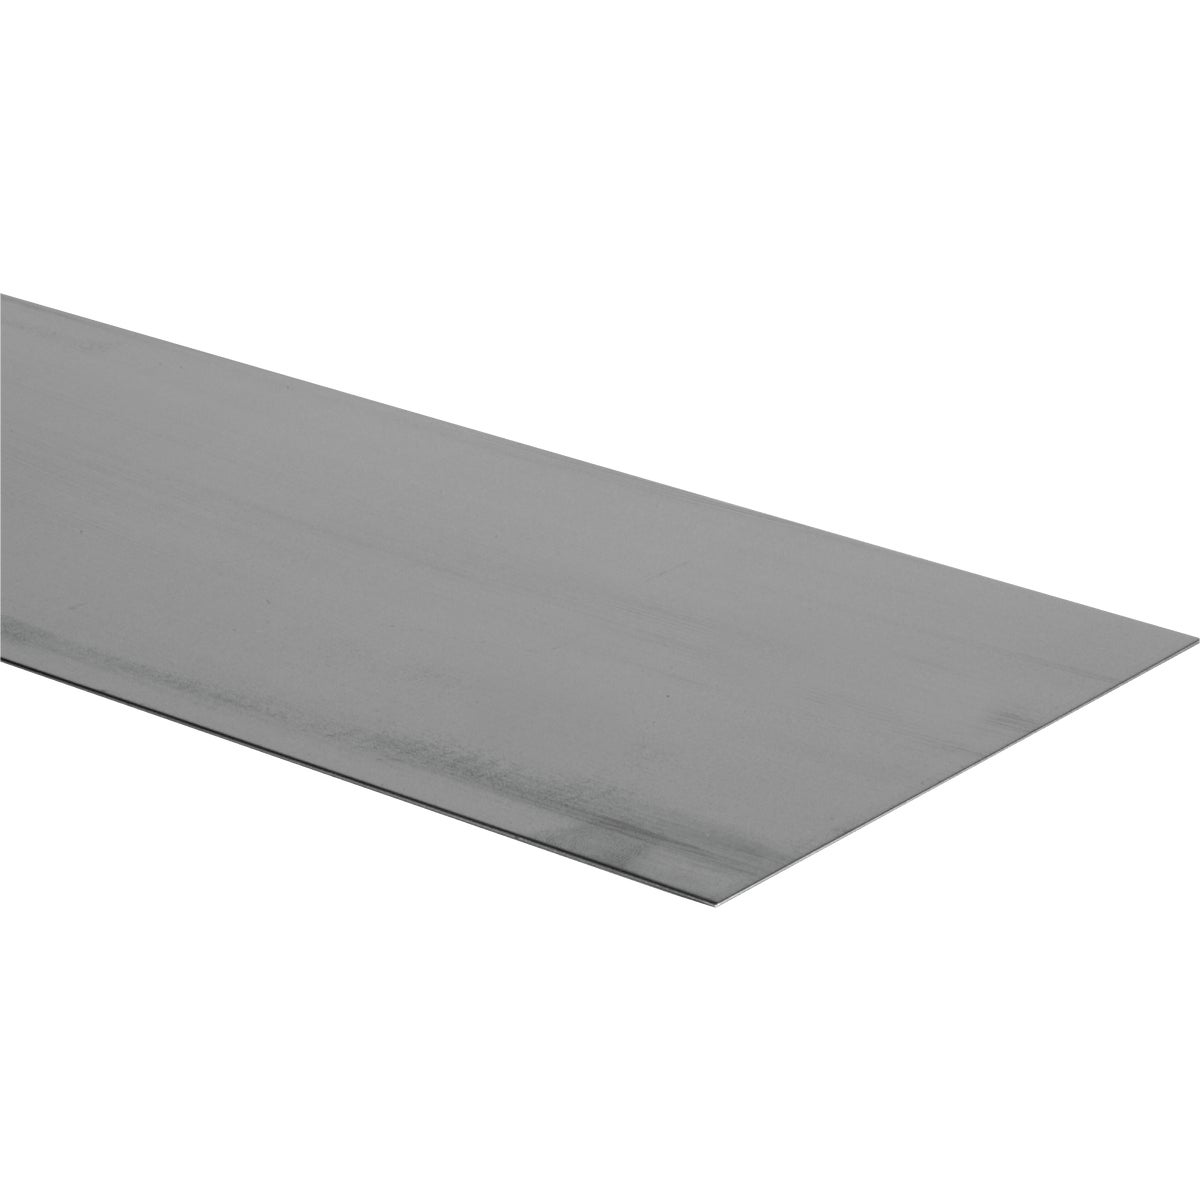 8X24 22GA STEEL SHEET - N316273 by National Mfg Co